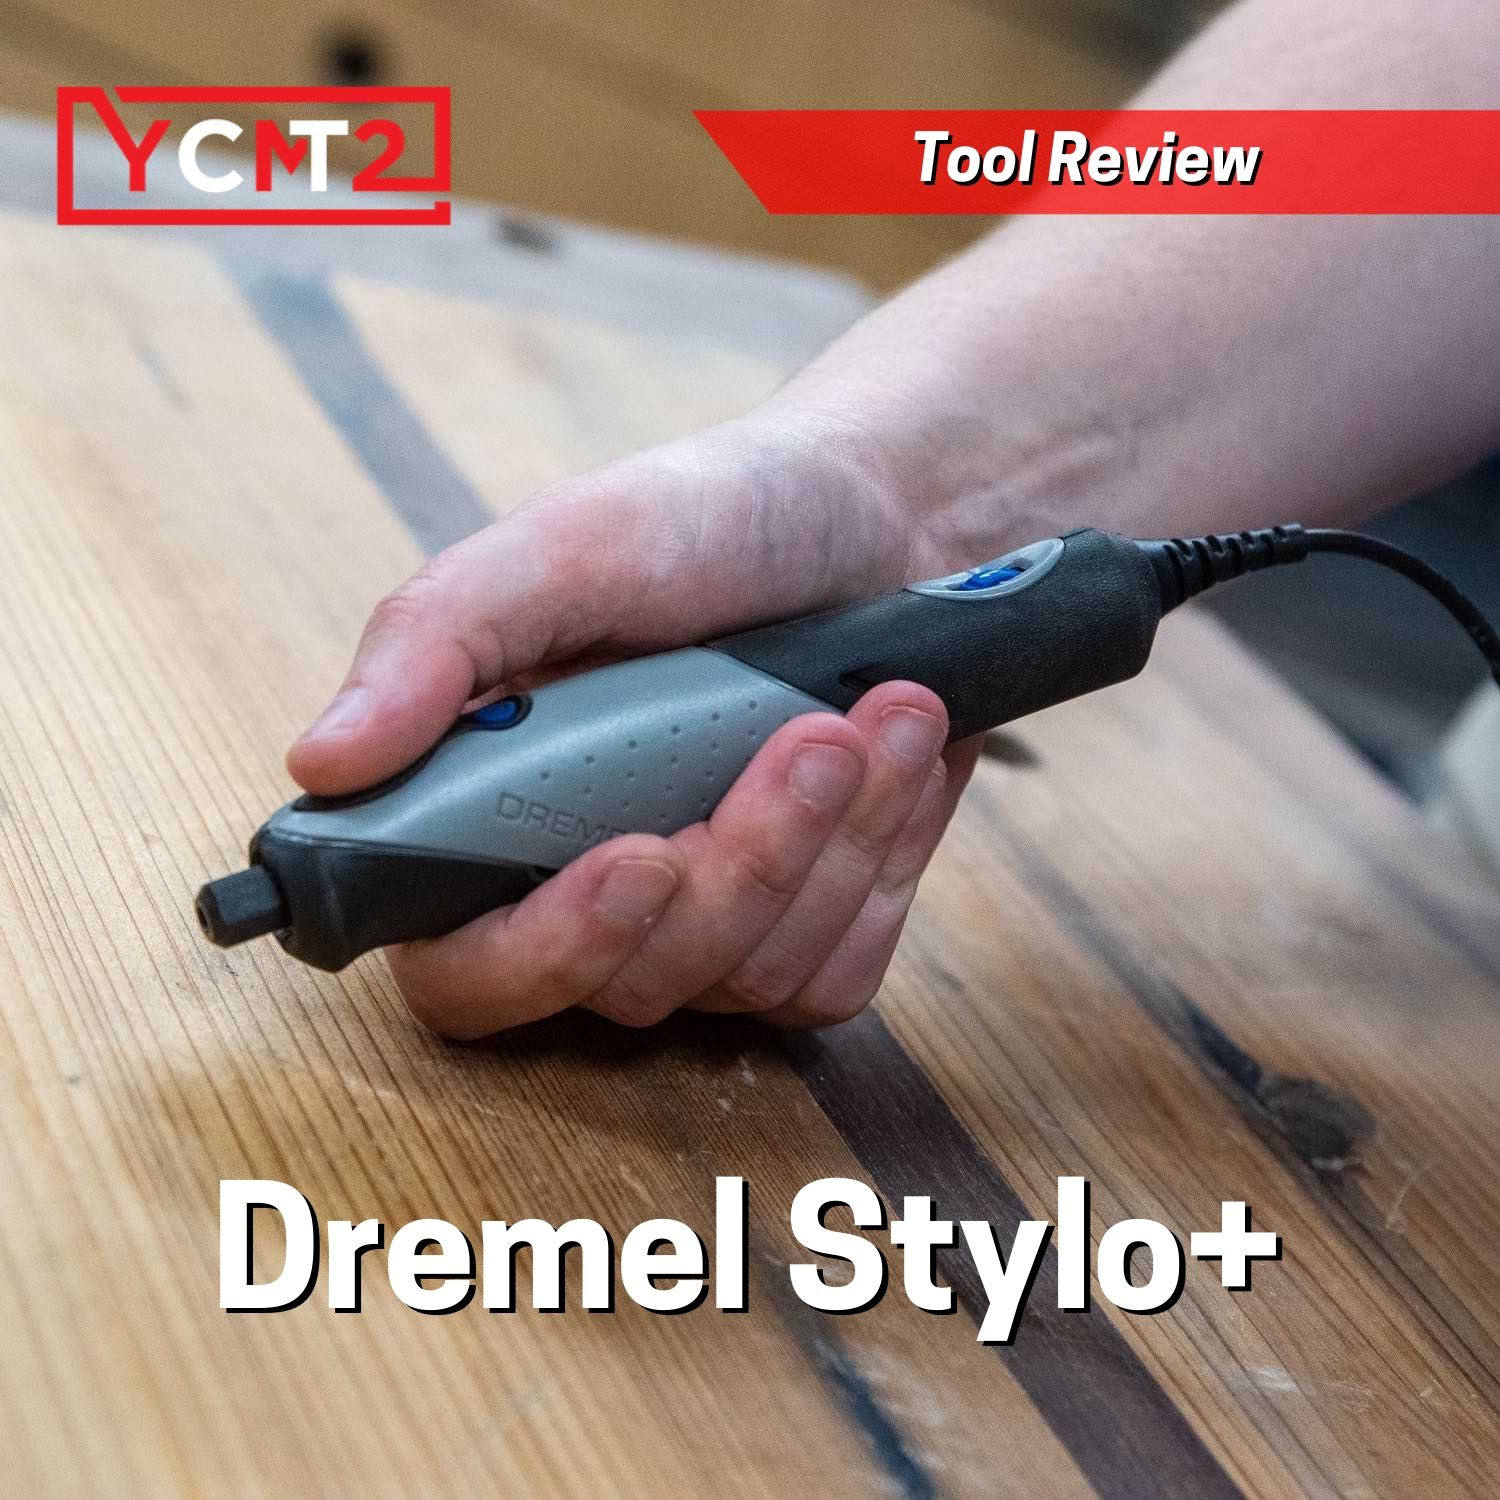 Dremel Stylo+ Craft Tool Review